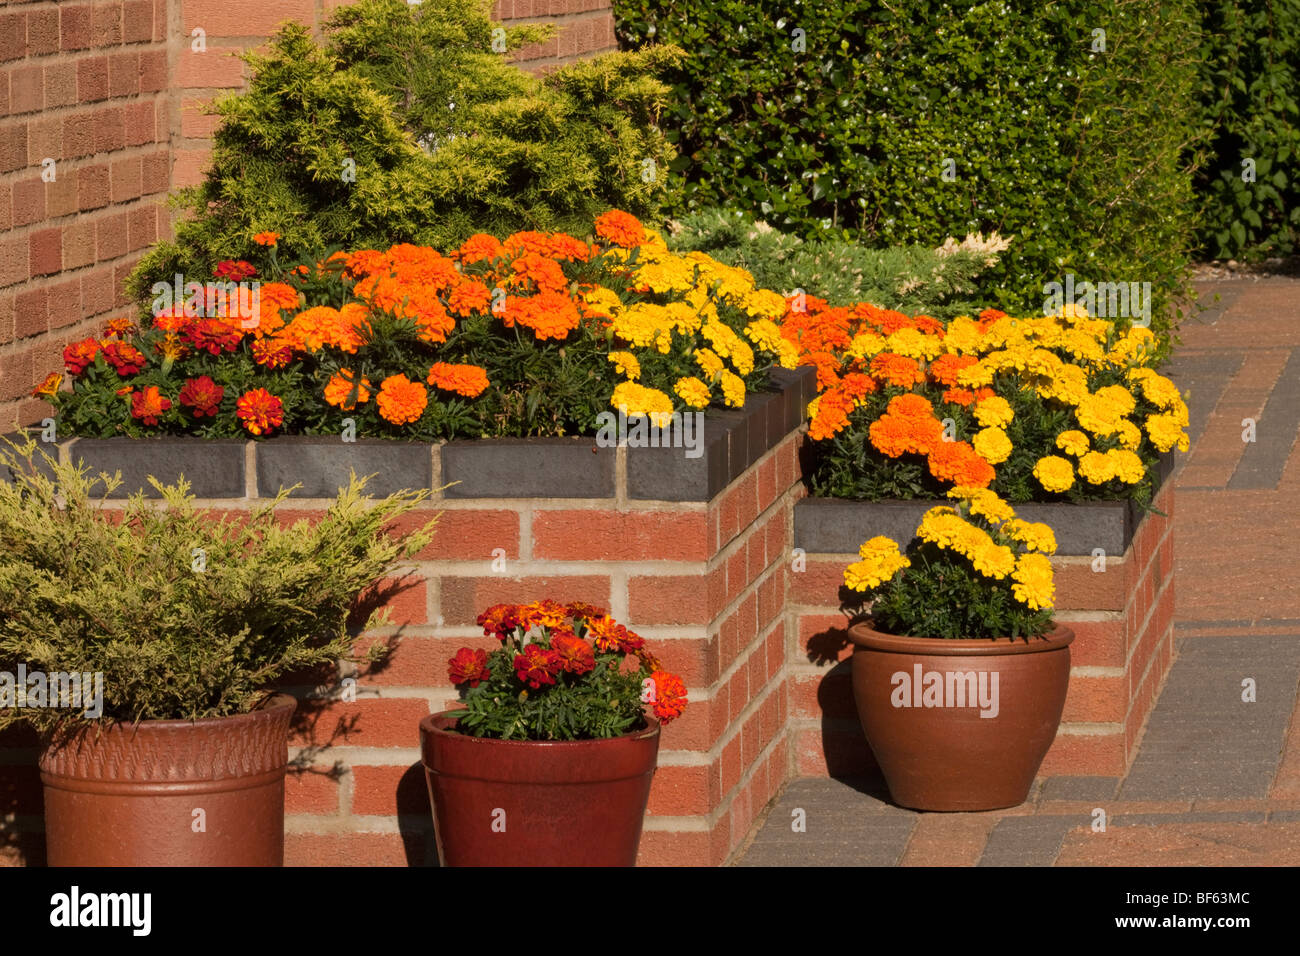 Raised Flower Bed on a Patio - Stock Image